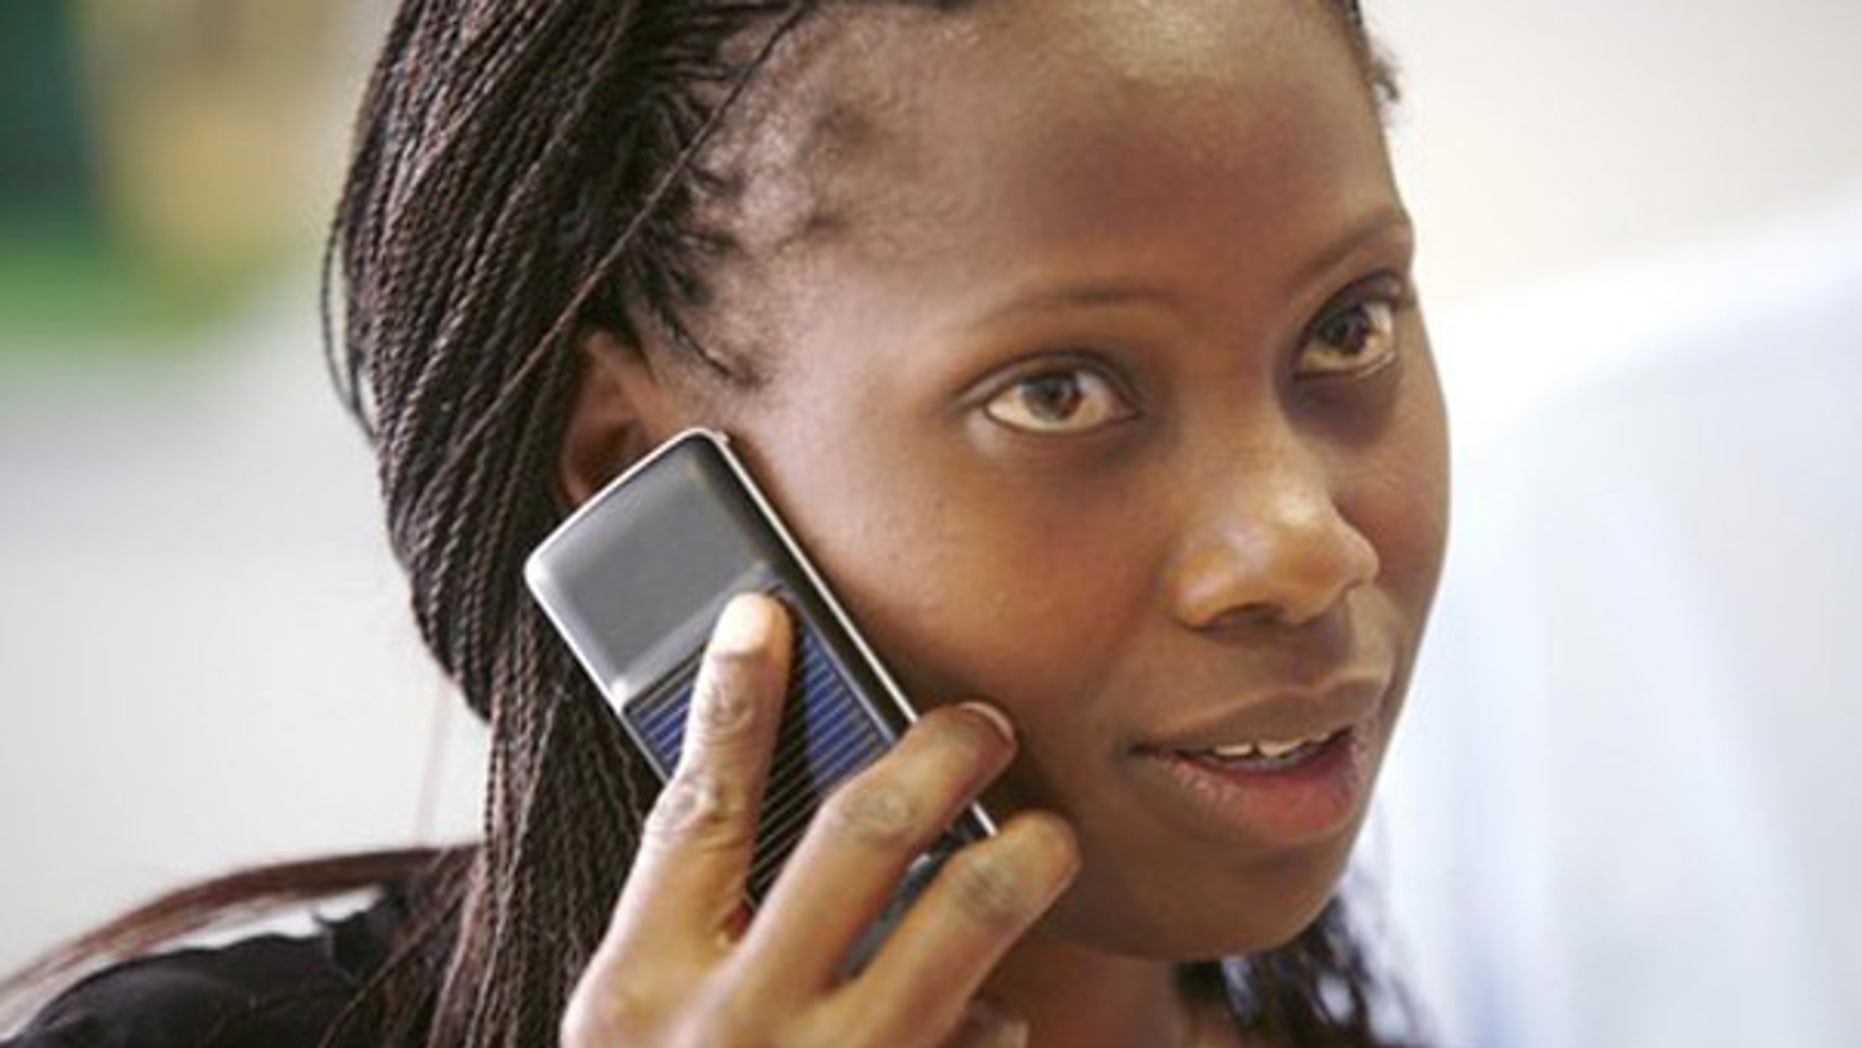 A Safaricom client uses a solar-charged mobile phone handset at a retail centre in Kenya's capital Nairobi, in this September 22, 2009 file photo. Solar cellphones could build on the economic advantages that mobile phones have already brought to far-flung regions of Africa and the Indian subcontinent, including price transparency and more accurate and timely information. Mobile phone penetration in these regions has been held back by a lack of electricity: there is simply no way to charge a cellphone in many rural areas of developing countries. To match feature CELLPHONES-SOLAR/. REUTERS/Thomas Mukoya/Files (KENYA BUSINESS SCI TECH)